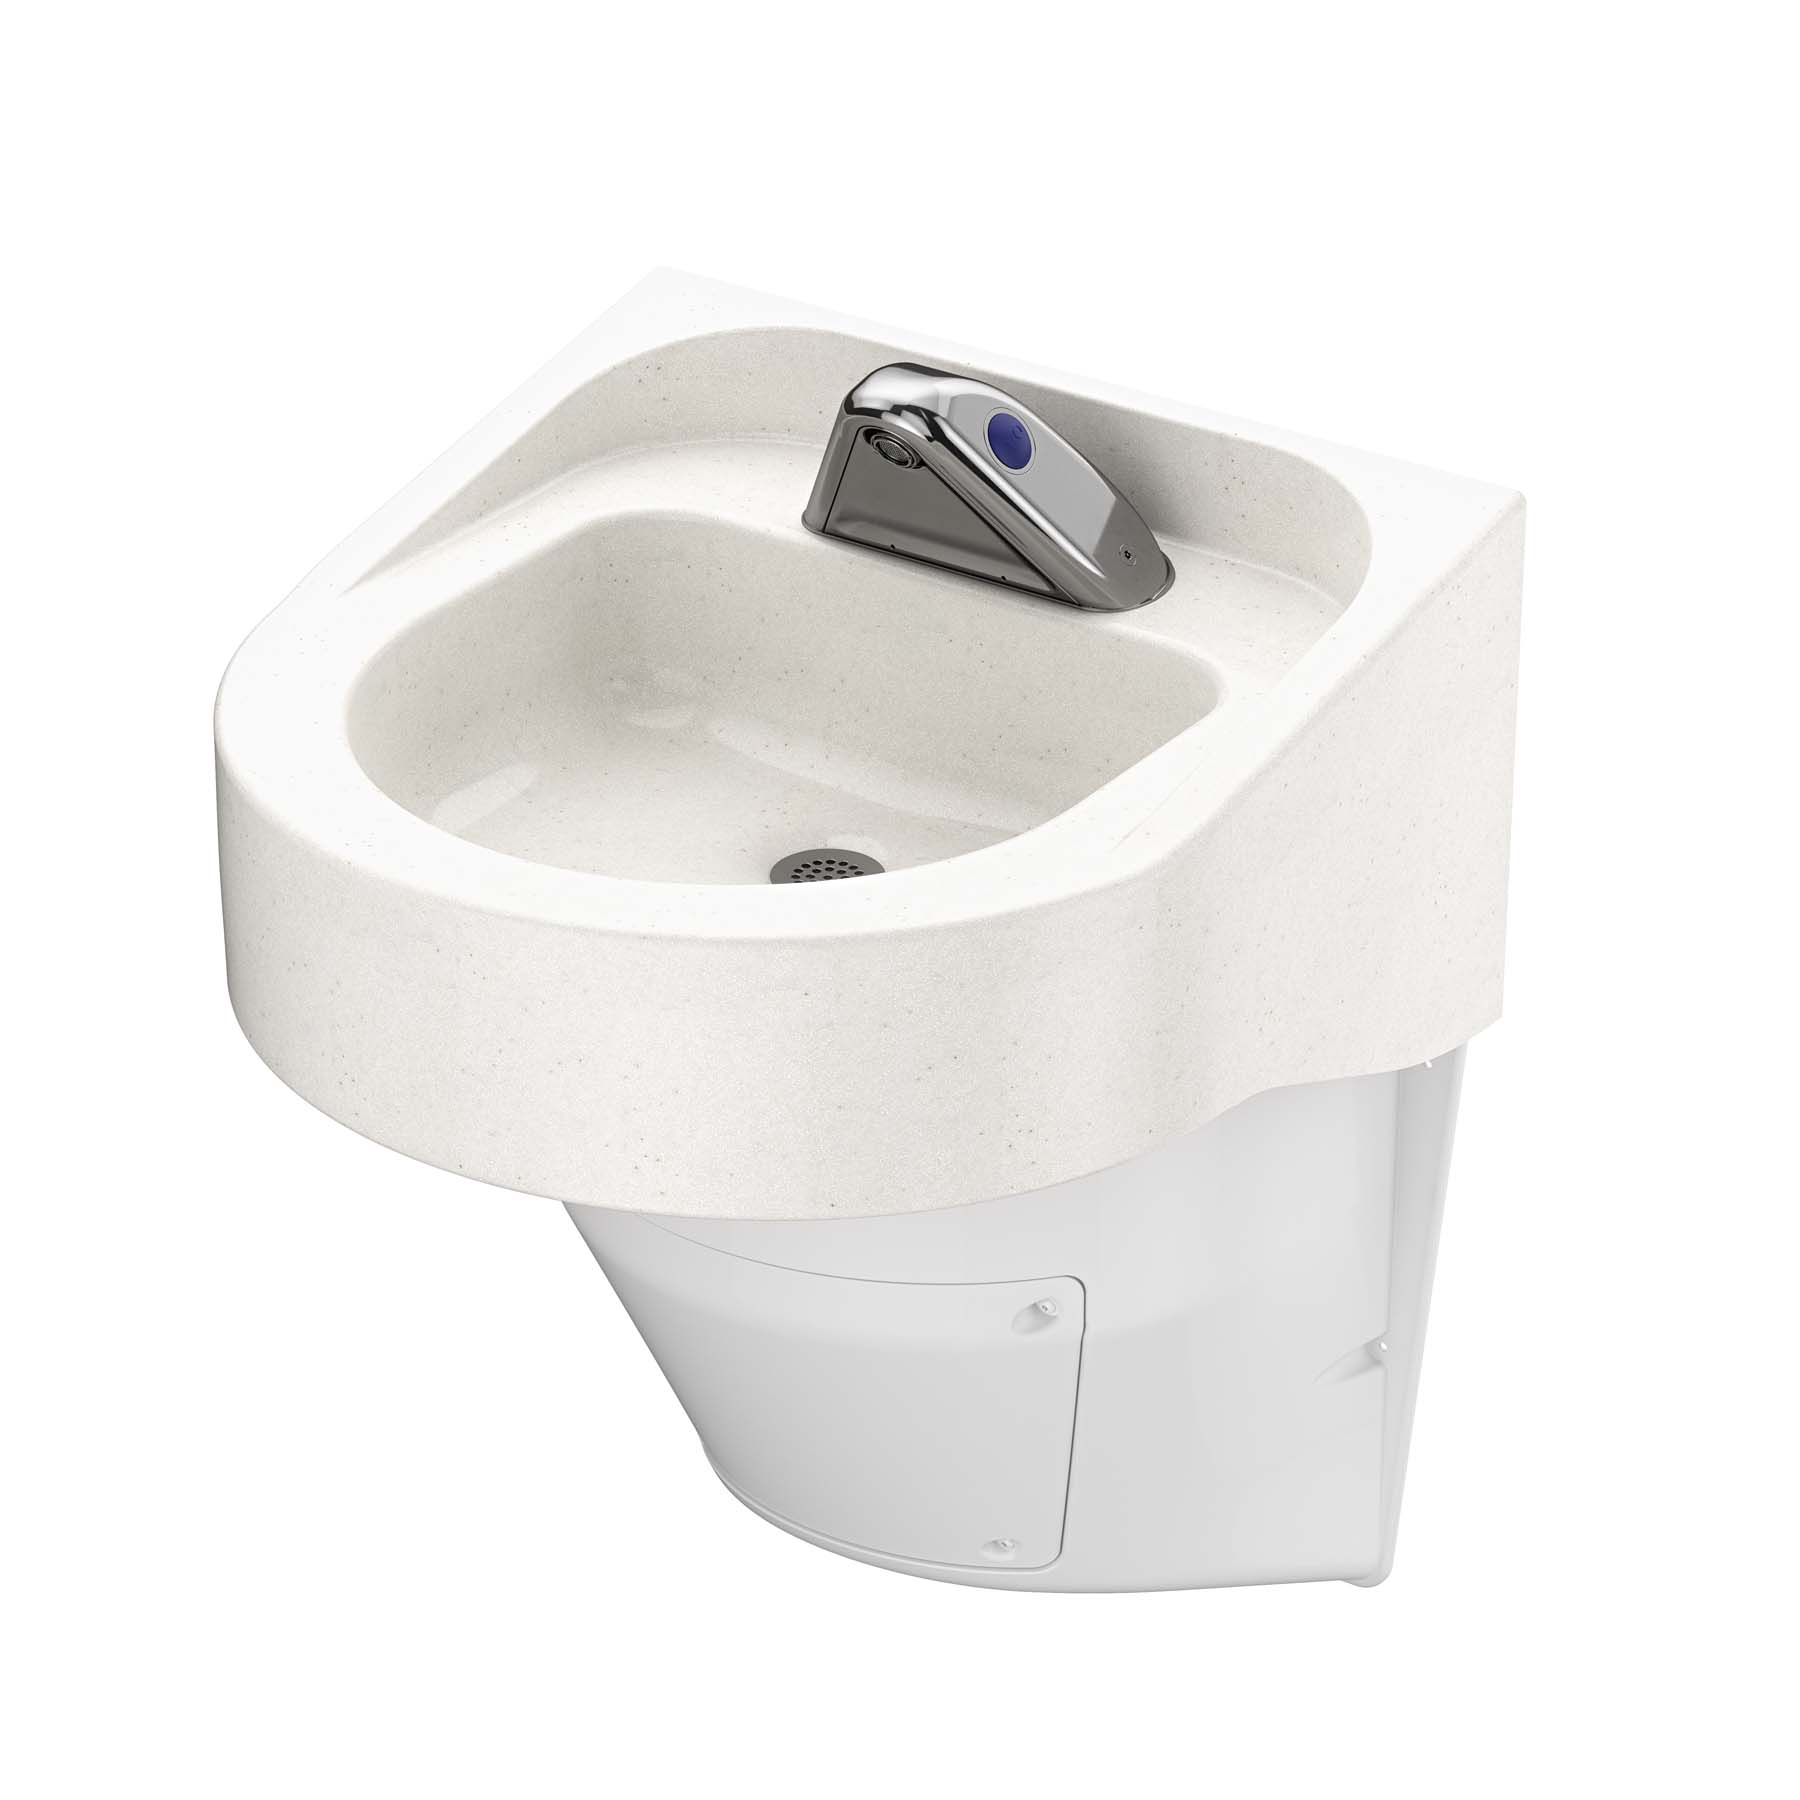 Ligature Resistant Sink and Trap Cover - Side Angle